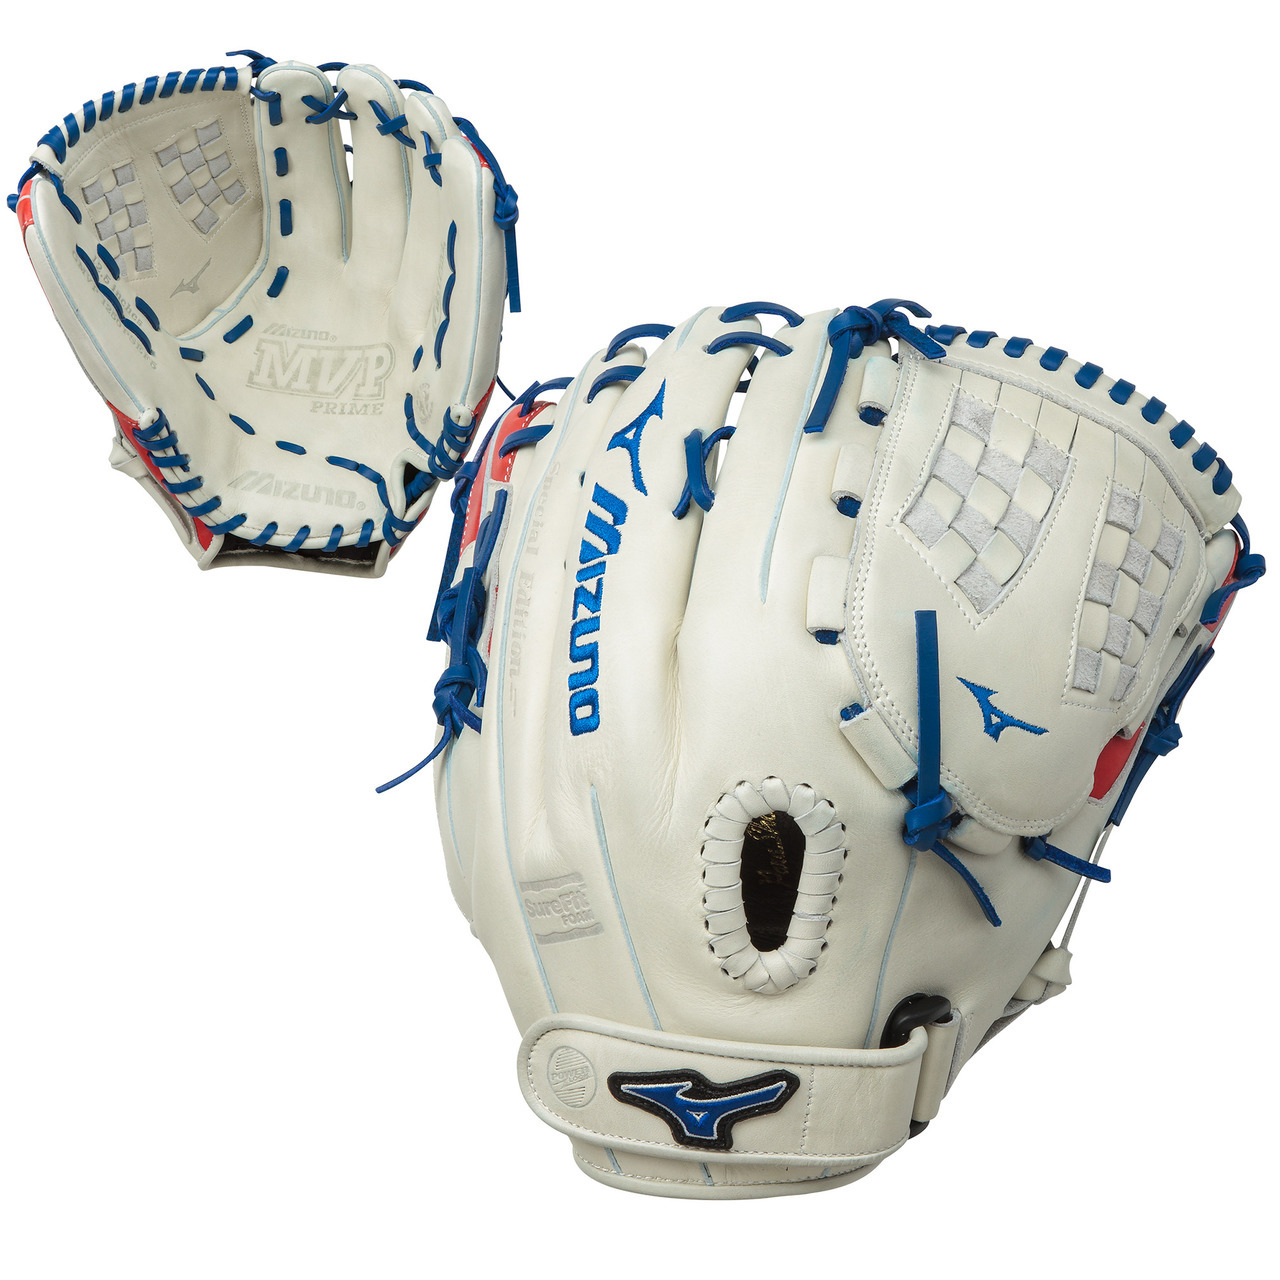 mizuno-mvp-prime-gmvp1250psef5-fast-pitch-softball-glove-12-5-silver-red-navy-left-hand-throw GMVP1250PSEF5-SILRDNY-LeftHandThrow Mizuno 889961059711 The Mizuno MVP Prime SE GMVP1250PSEF5 has been constructed with the